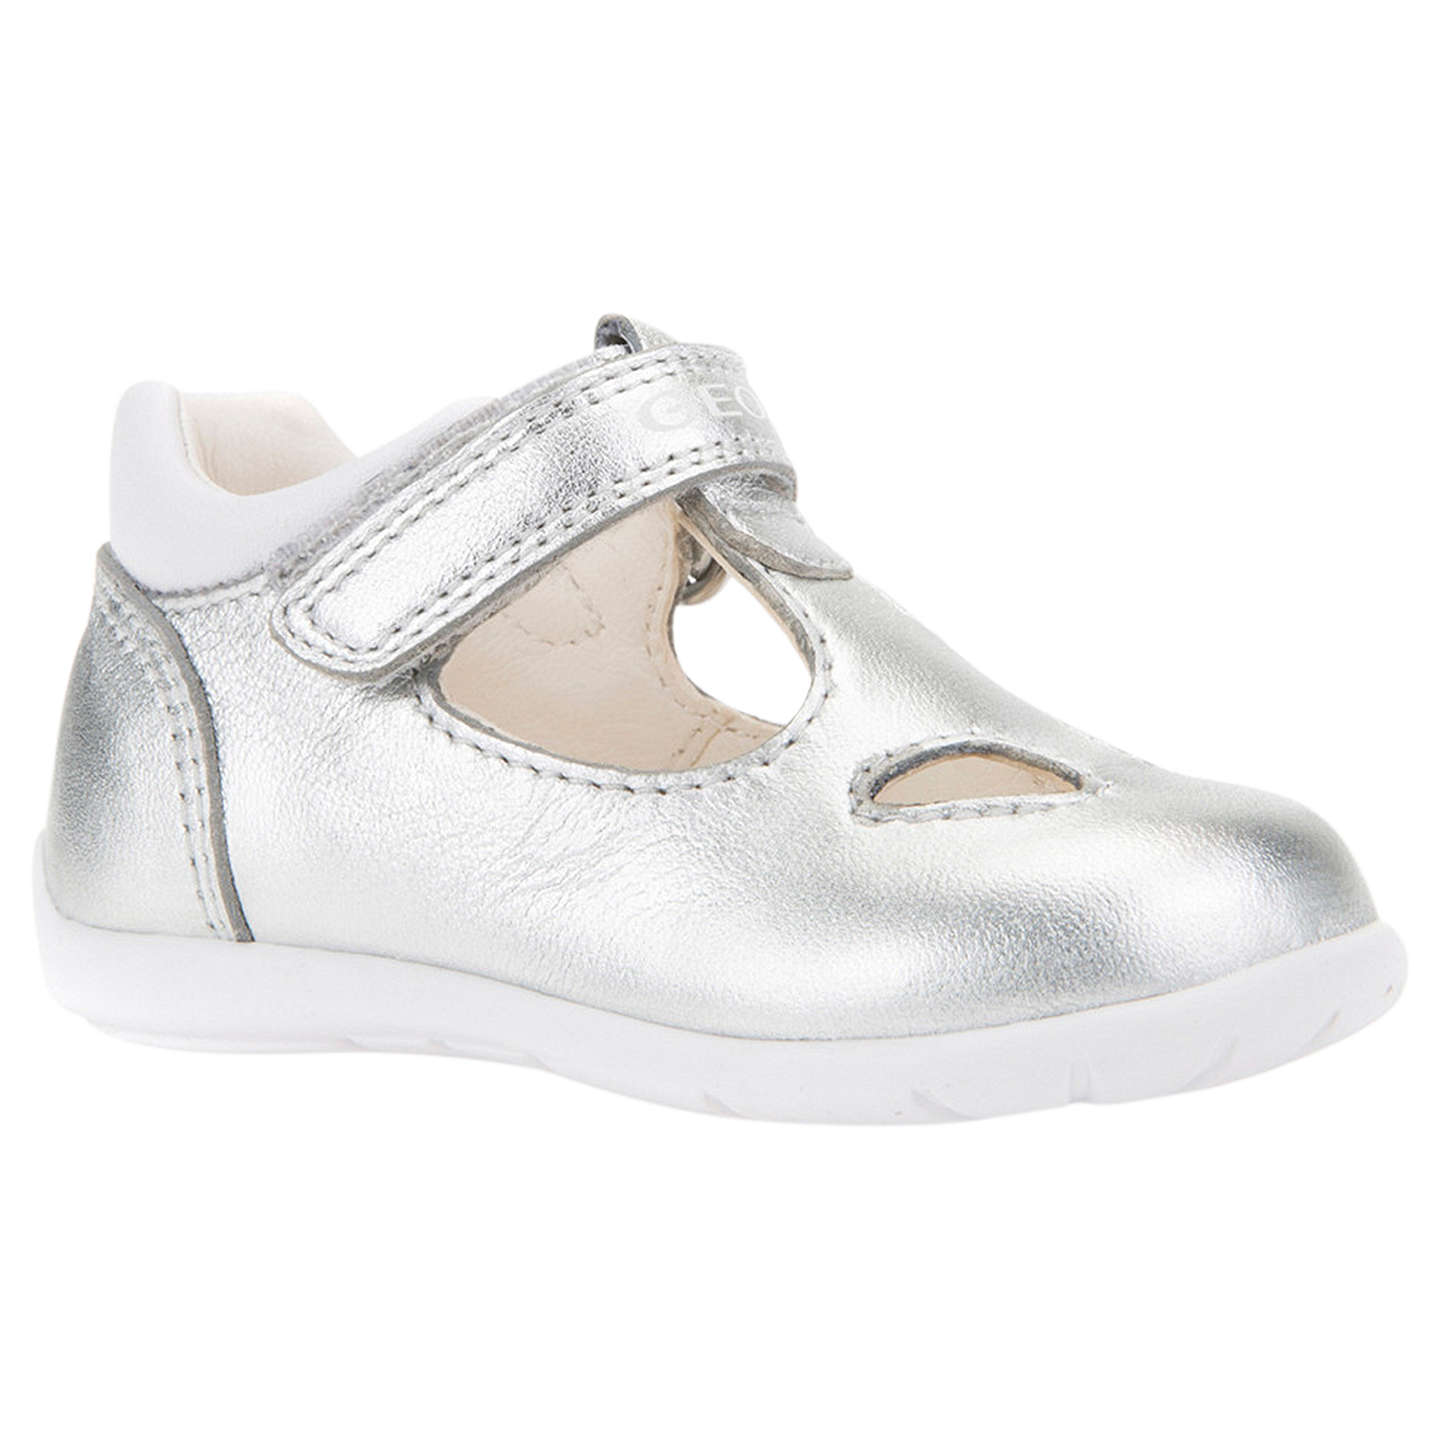 Geox Children s Kaytan Riptape Mary Jane First Shoes Silver at John